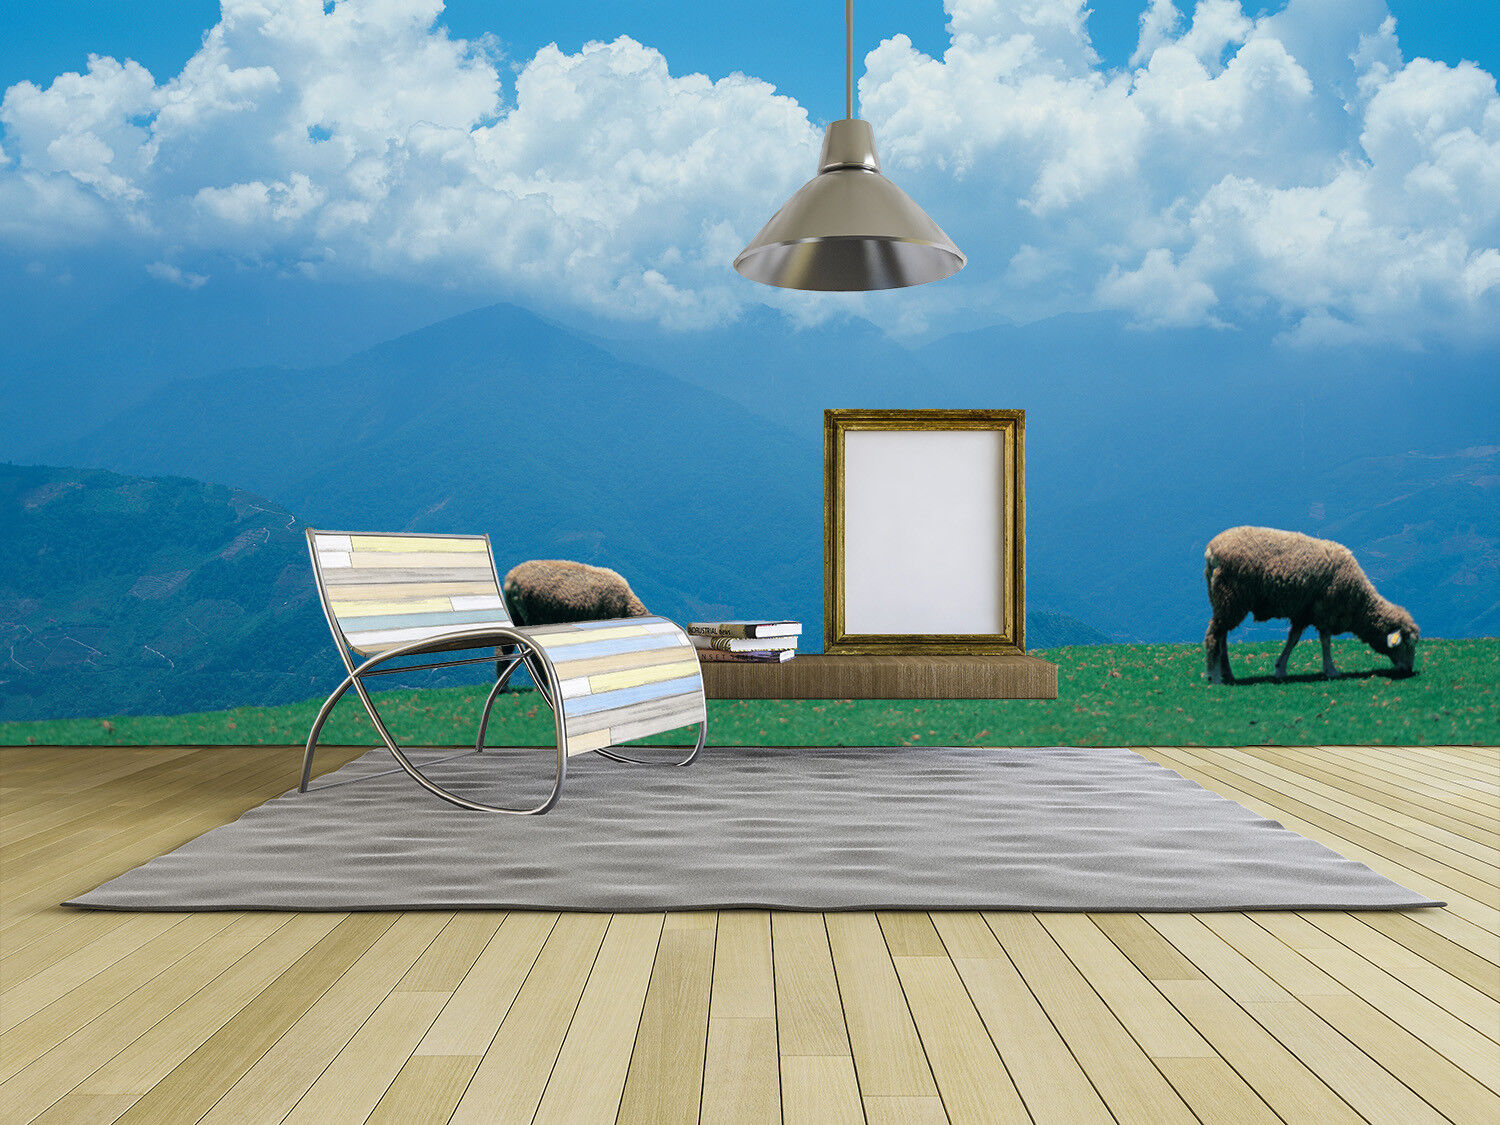 3D White Sheep 64 Wallpaper Murals Wall Print Wallpaper Mural AJ WALL UK Lemo